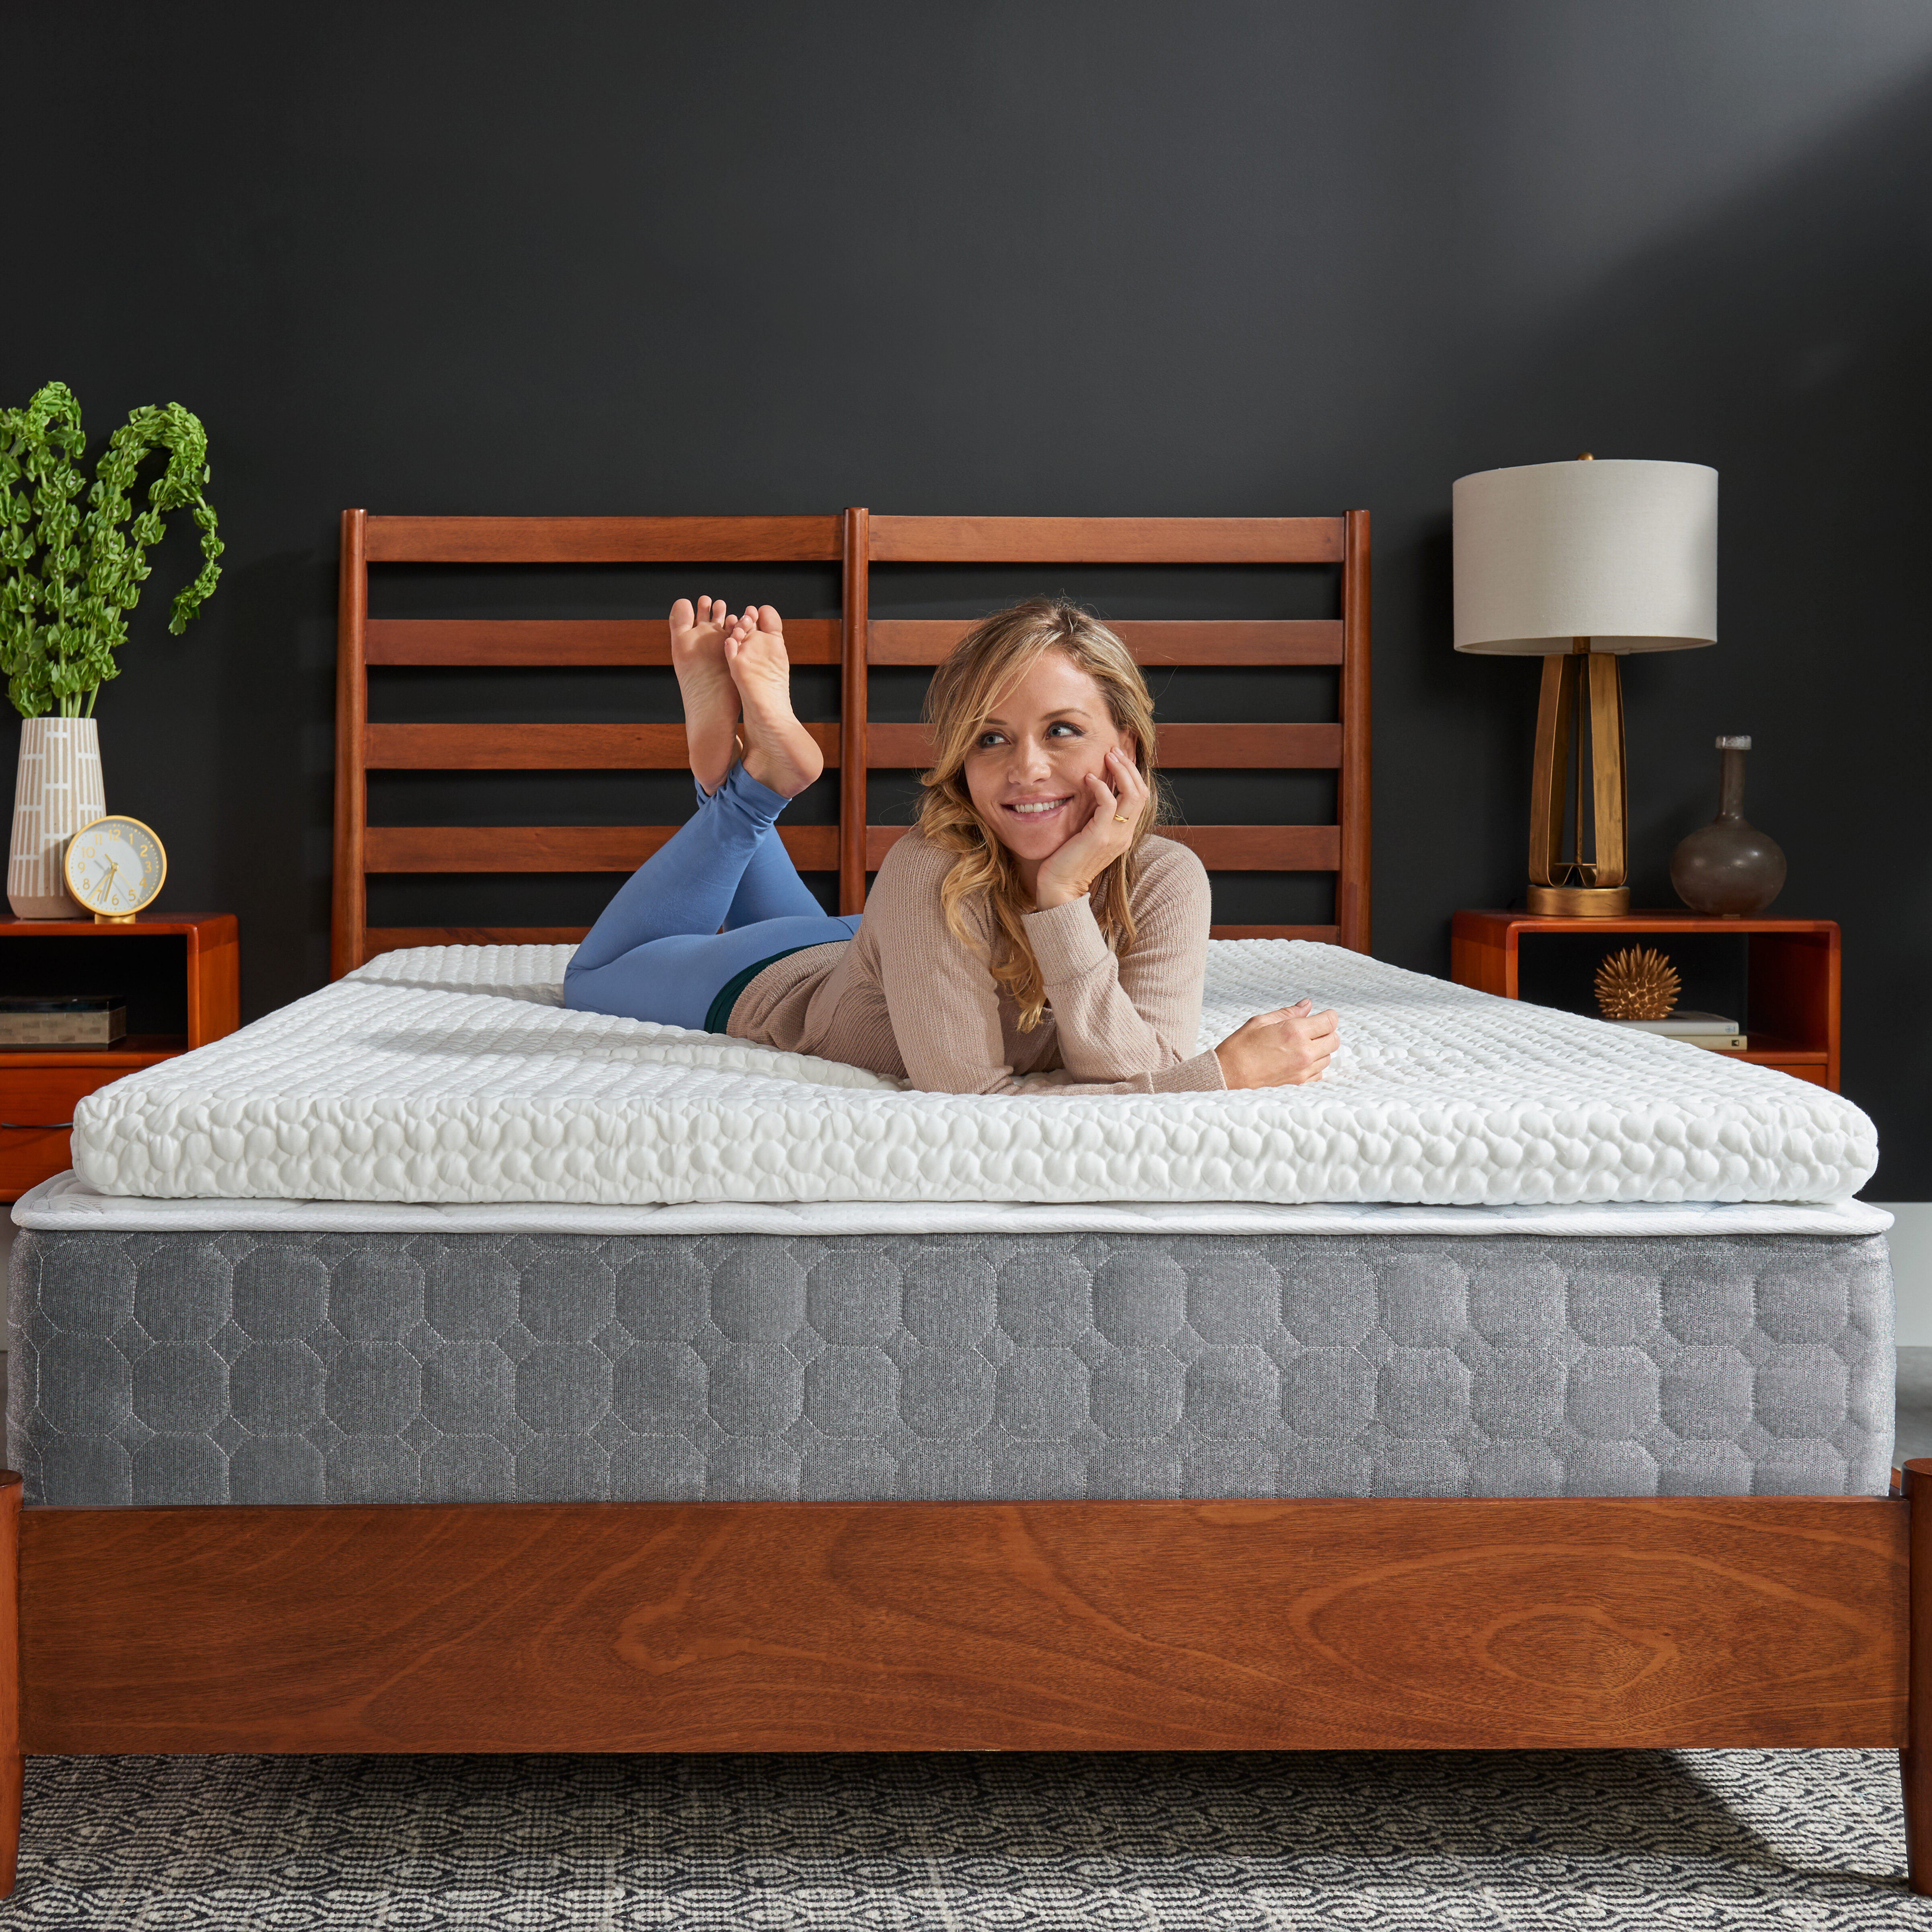 Mattress Toppers Protectors New 100 Memory Foam Mattress Topper Available In All Sizes And Depths Bree Com Br